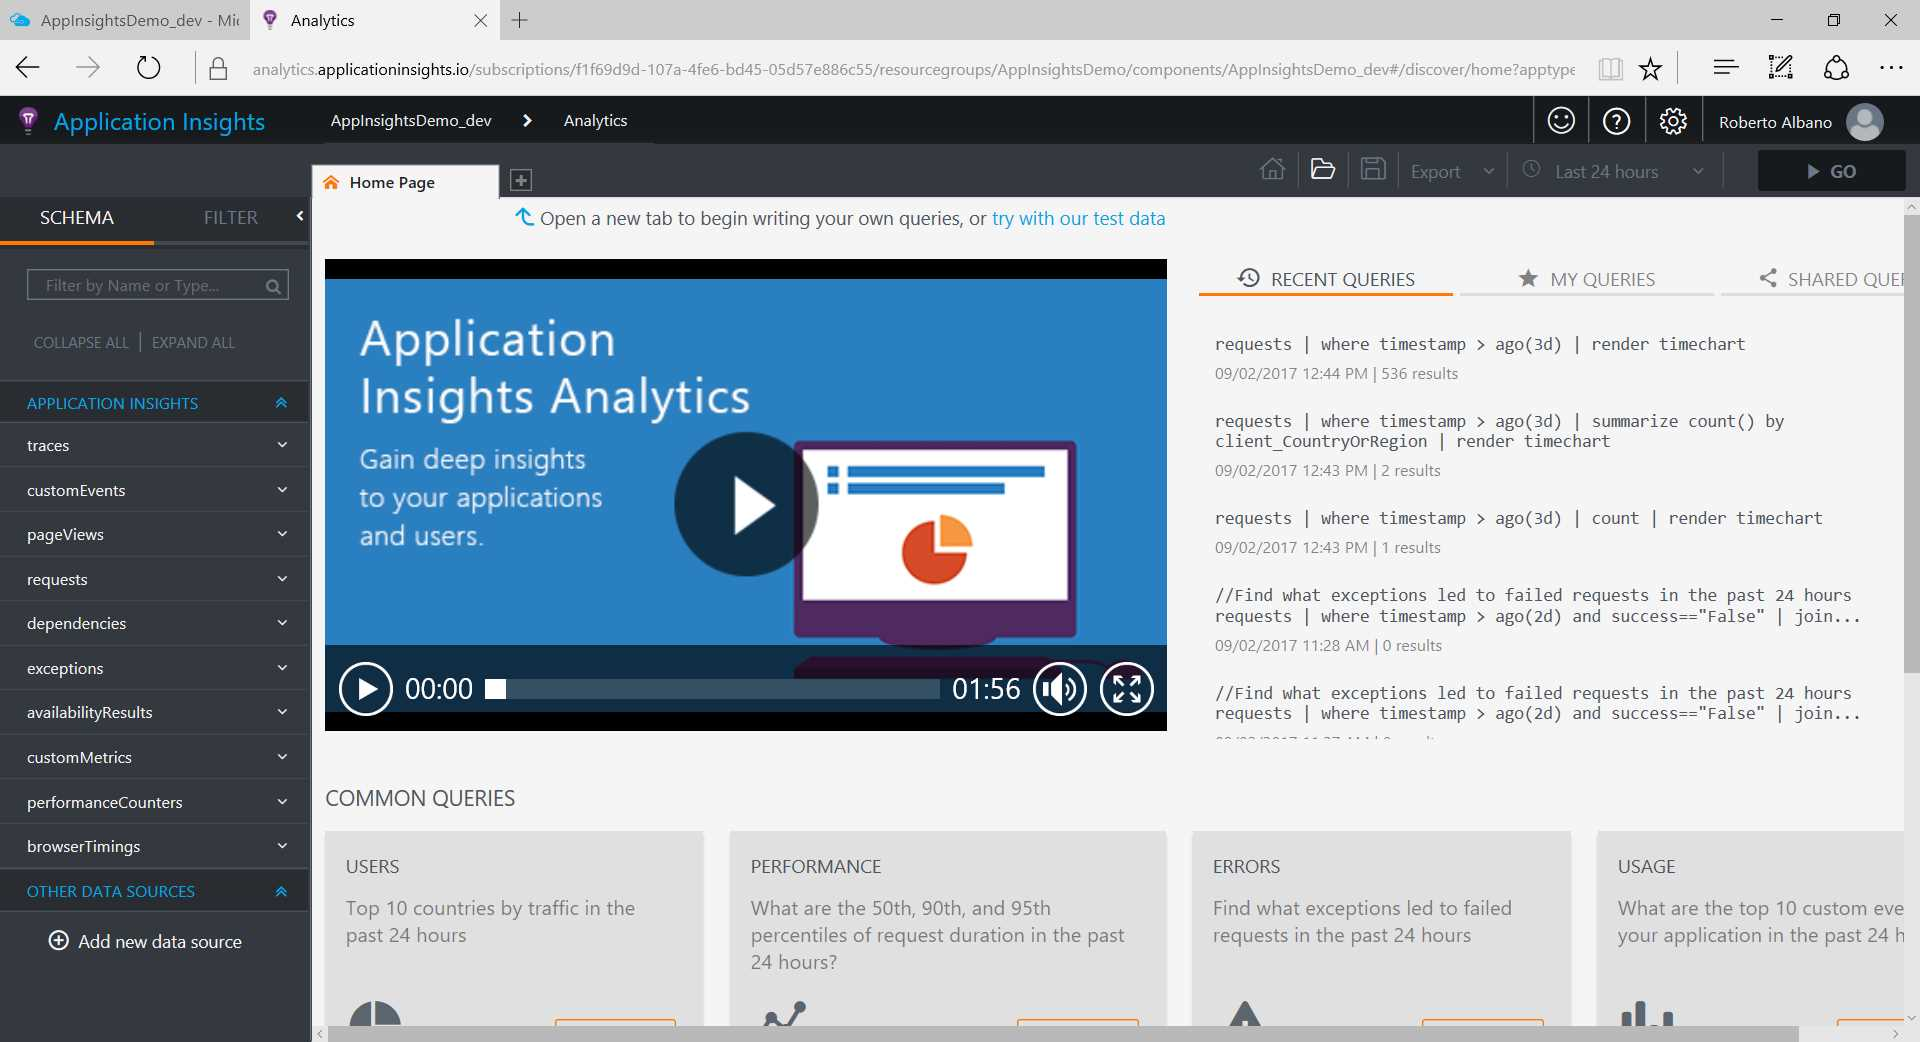 Ebook - Chapter 10 of Application Insights